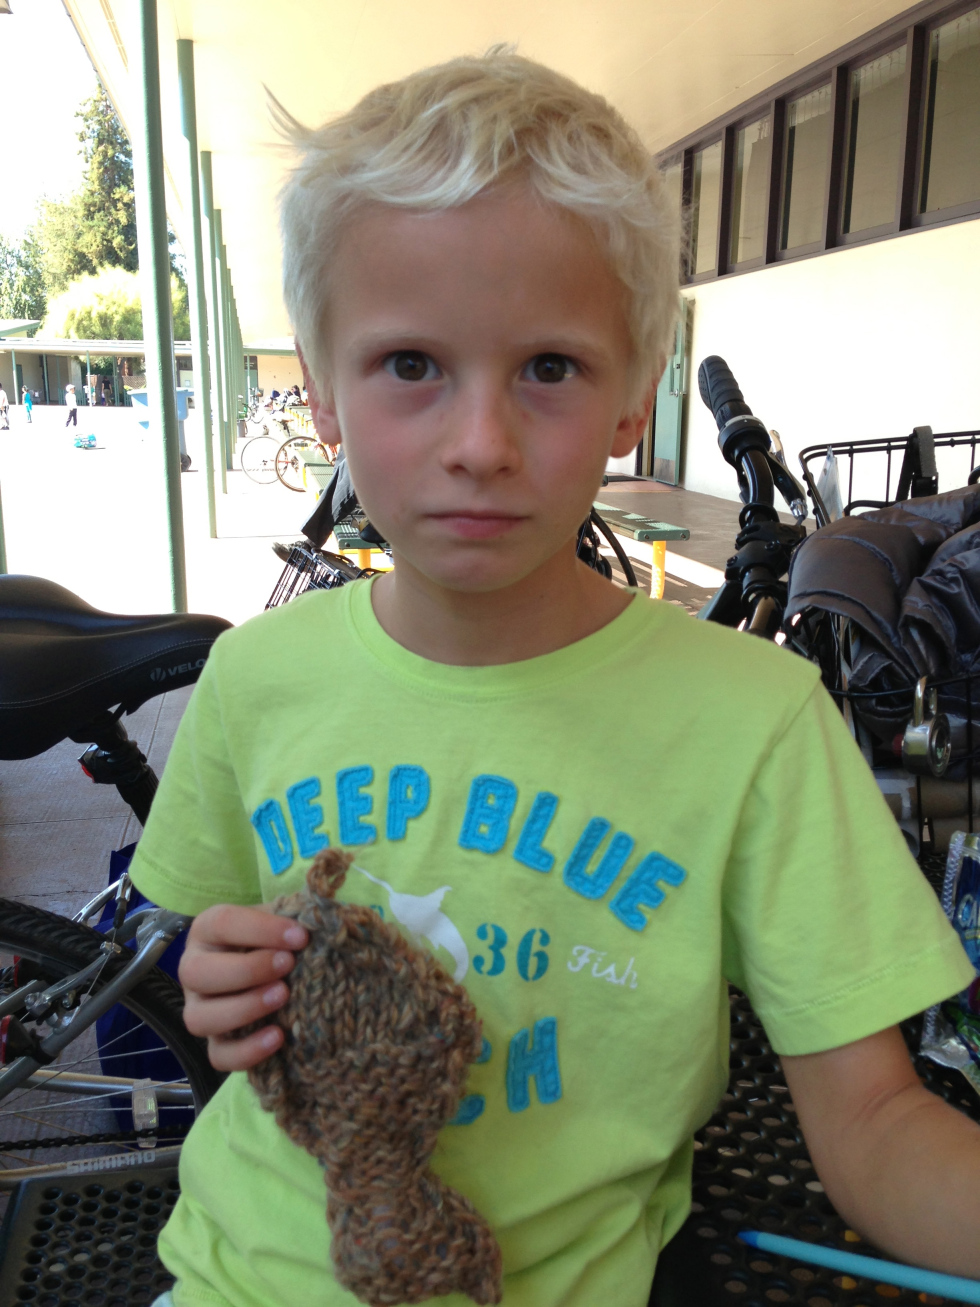 What to make next… hmm… a fish toy for his cat. (3rd grader)